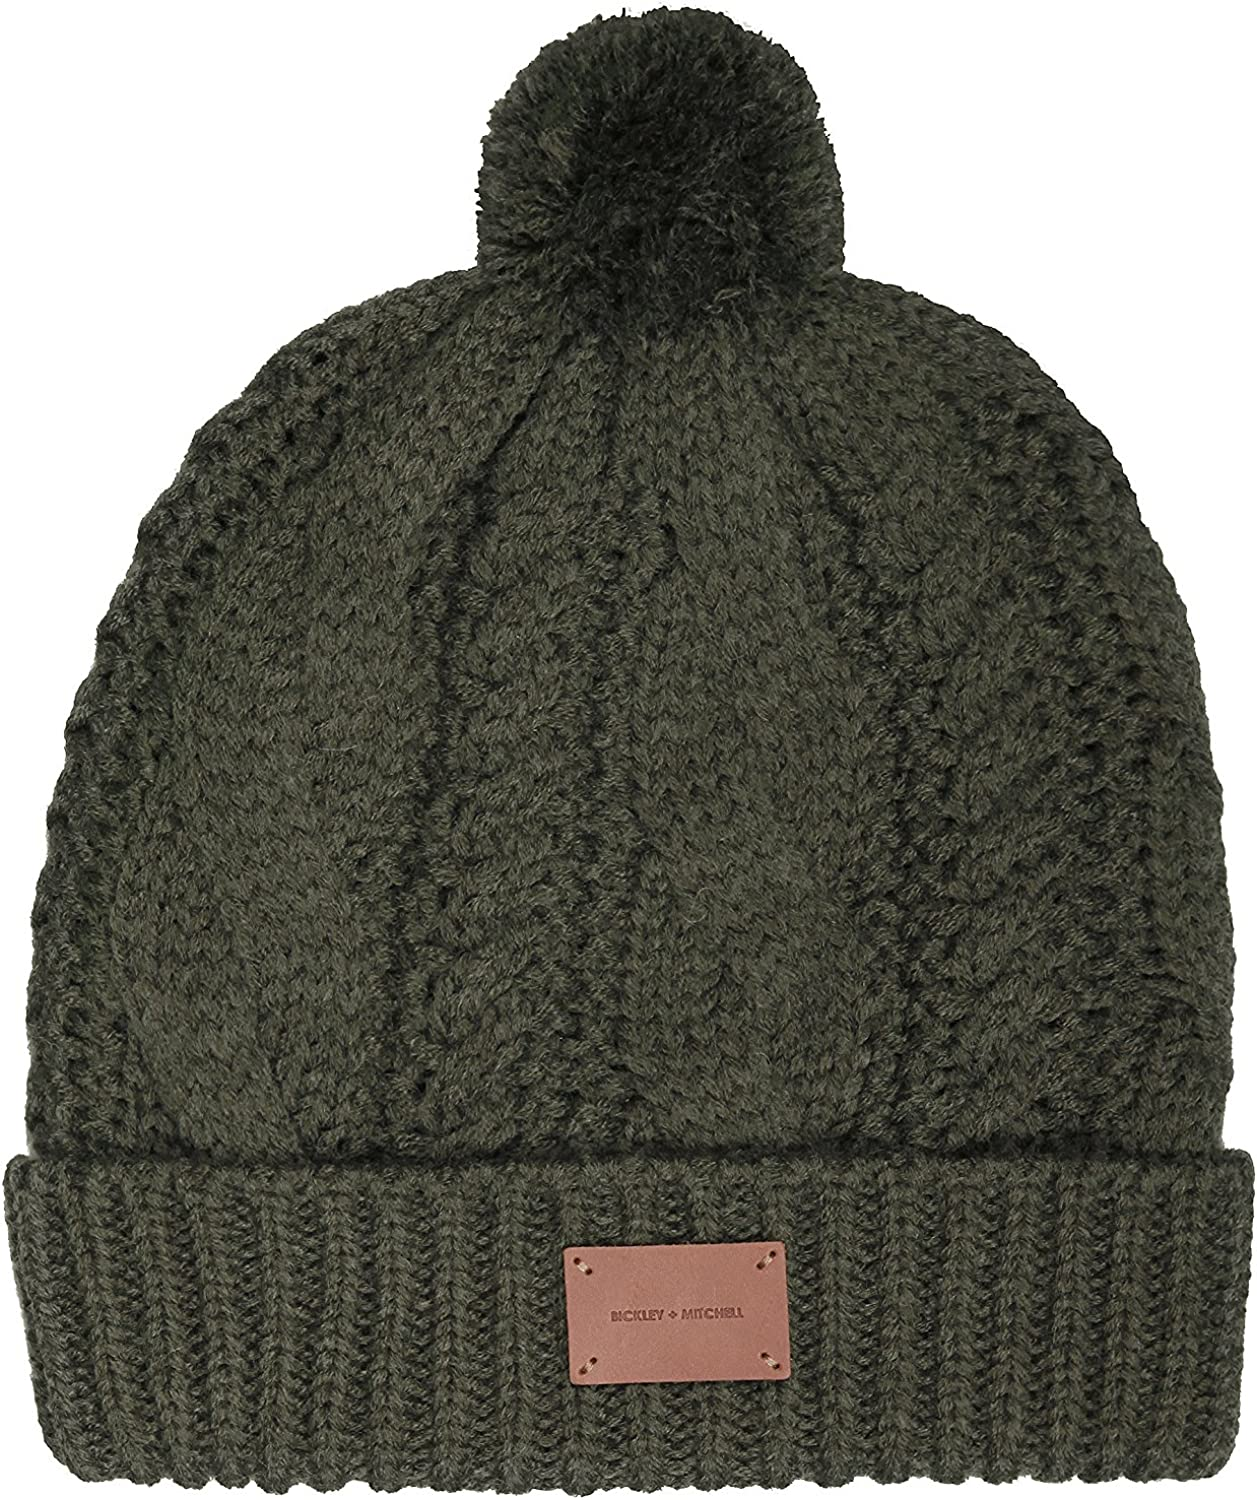 Bickley & Mitchell Womens Cable Beanie with Fleece Inside Beanie Hat